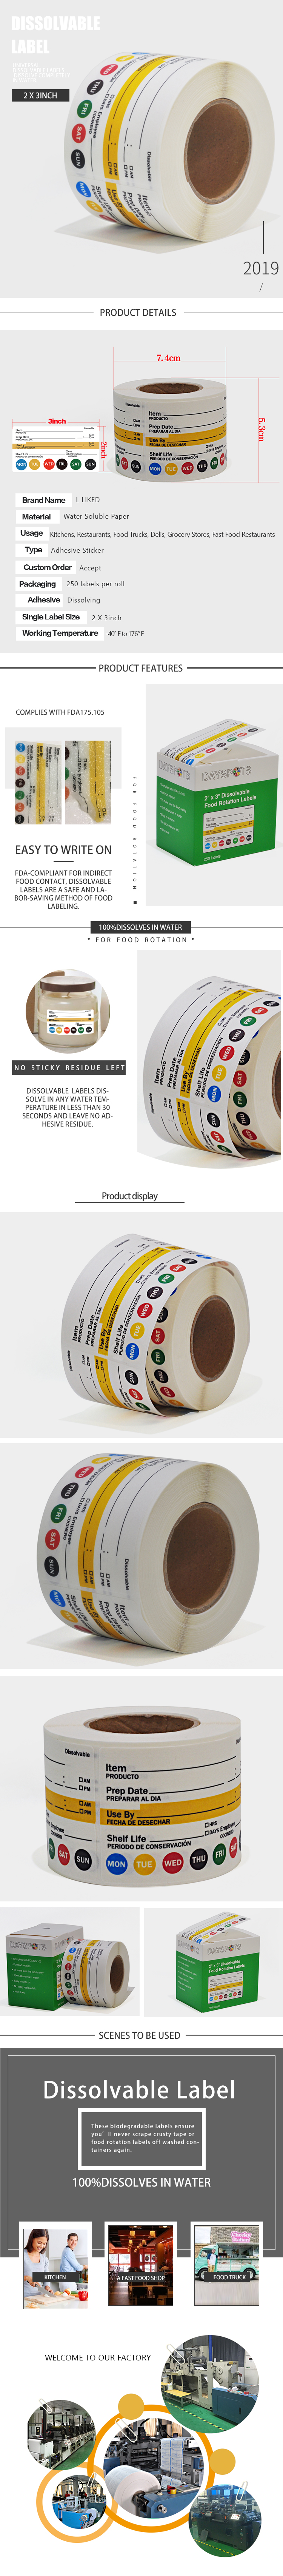 Universal dissolvable Label with Item Prep use by and shelf life